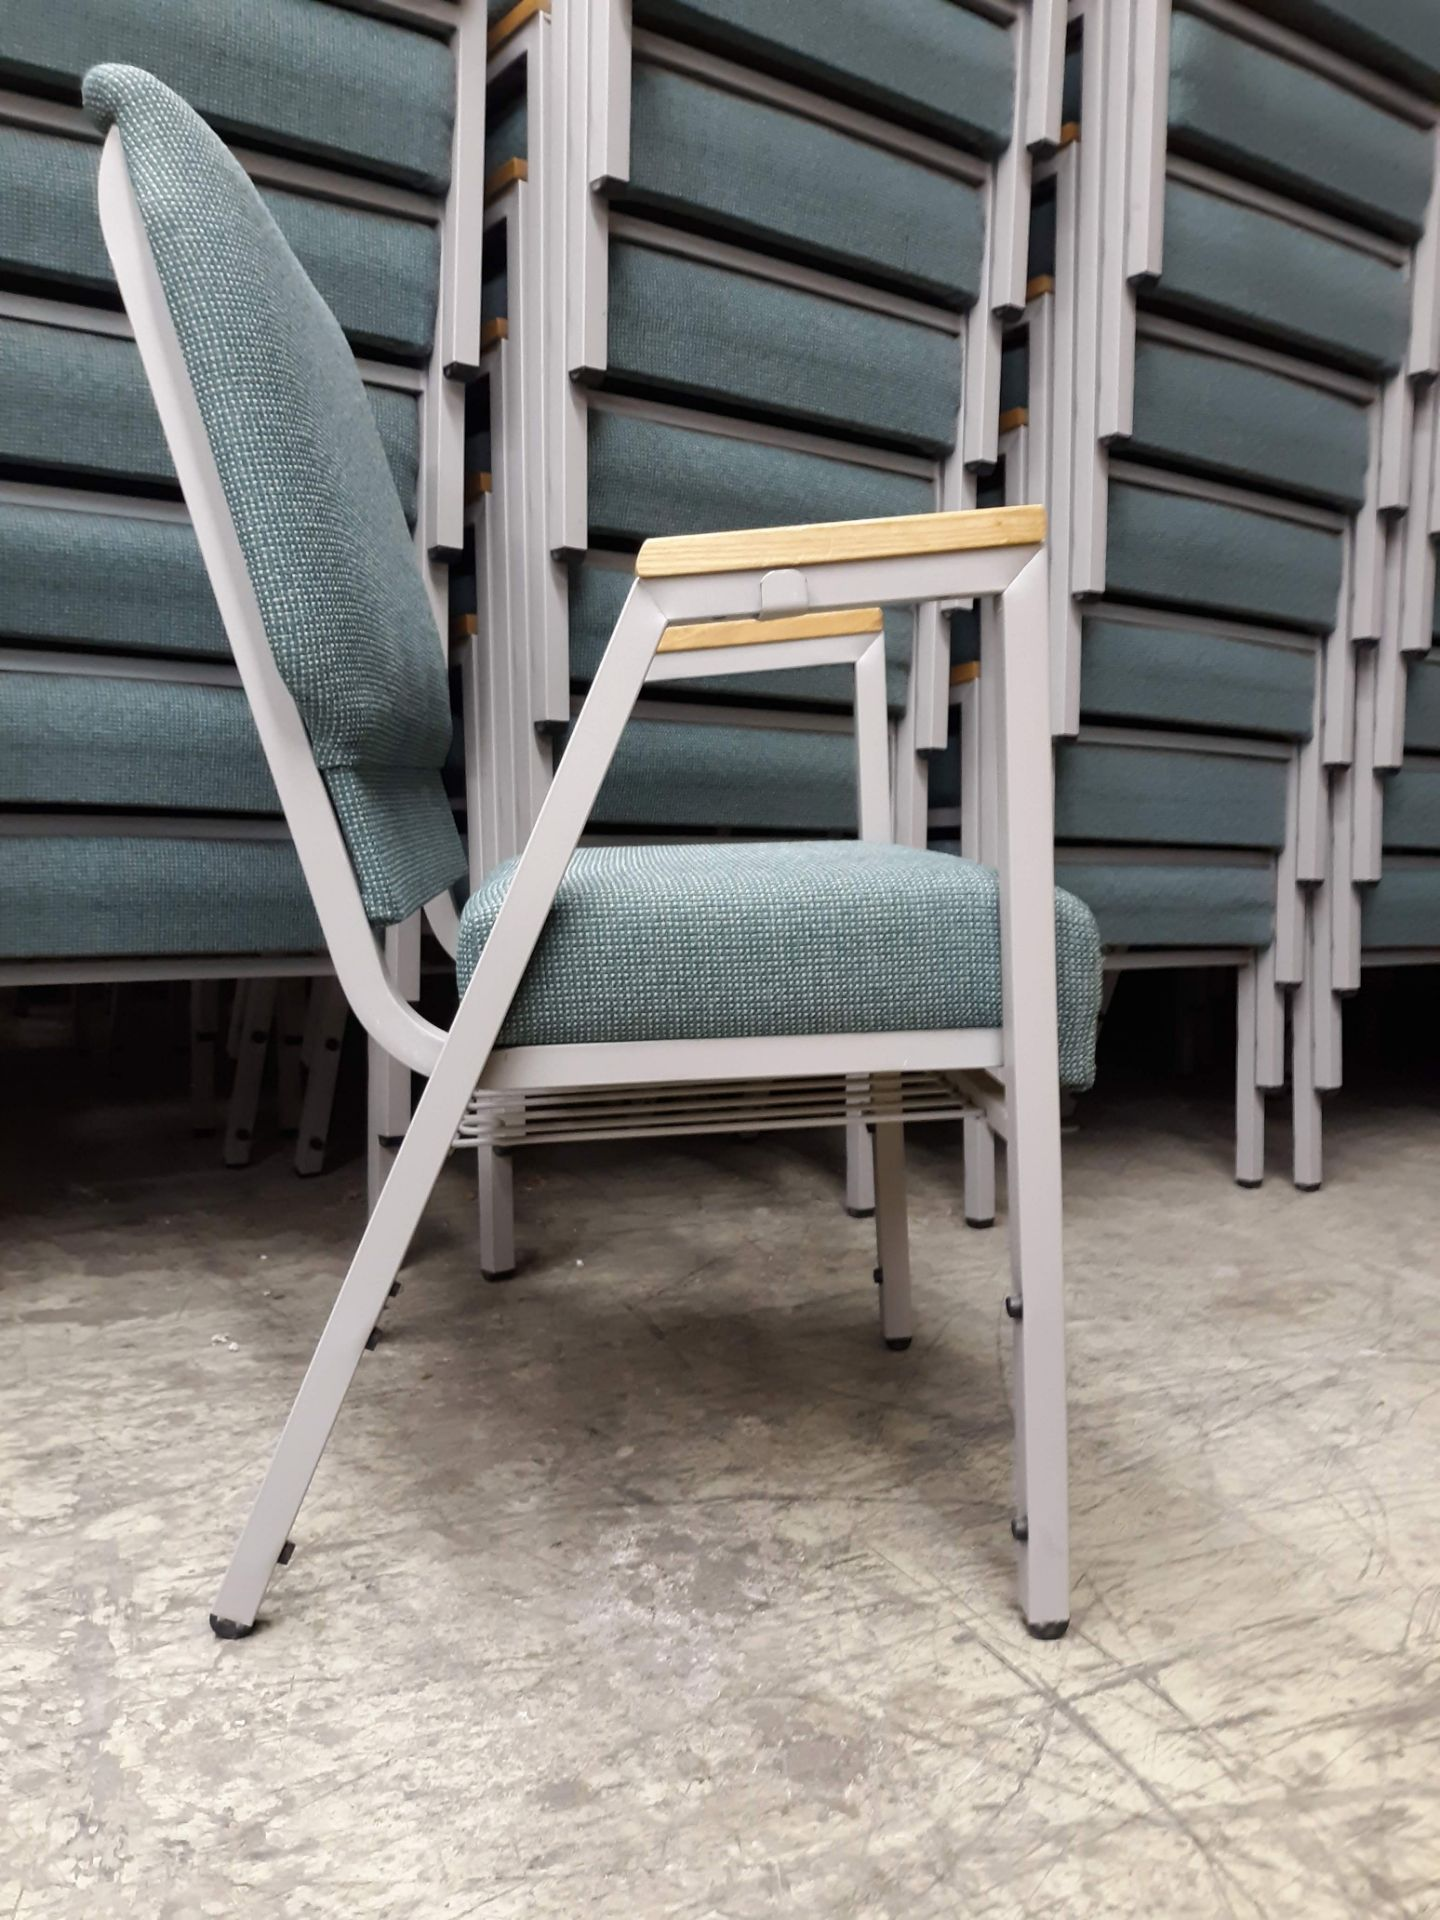 Lot 1227 - (10) CHURCH CHAIR INDUSTRIES FABRIC PADDED STEEL FRAME CHAIRS(LOCATED AT: 433 COUNCIL DRIVE, FORT